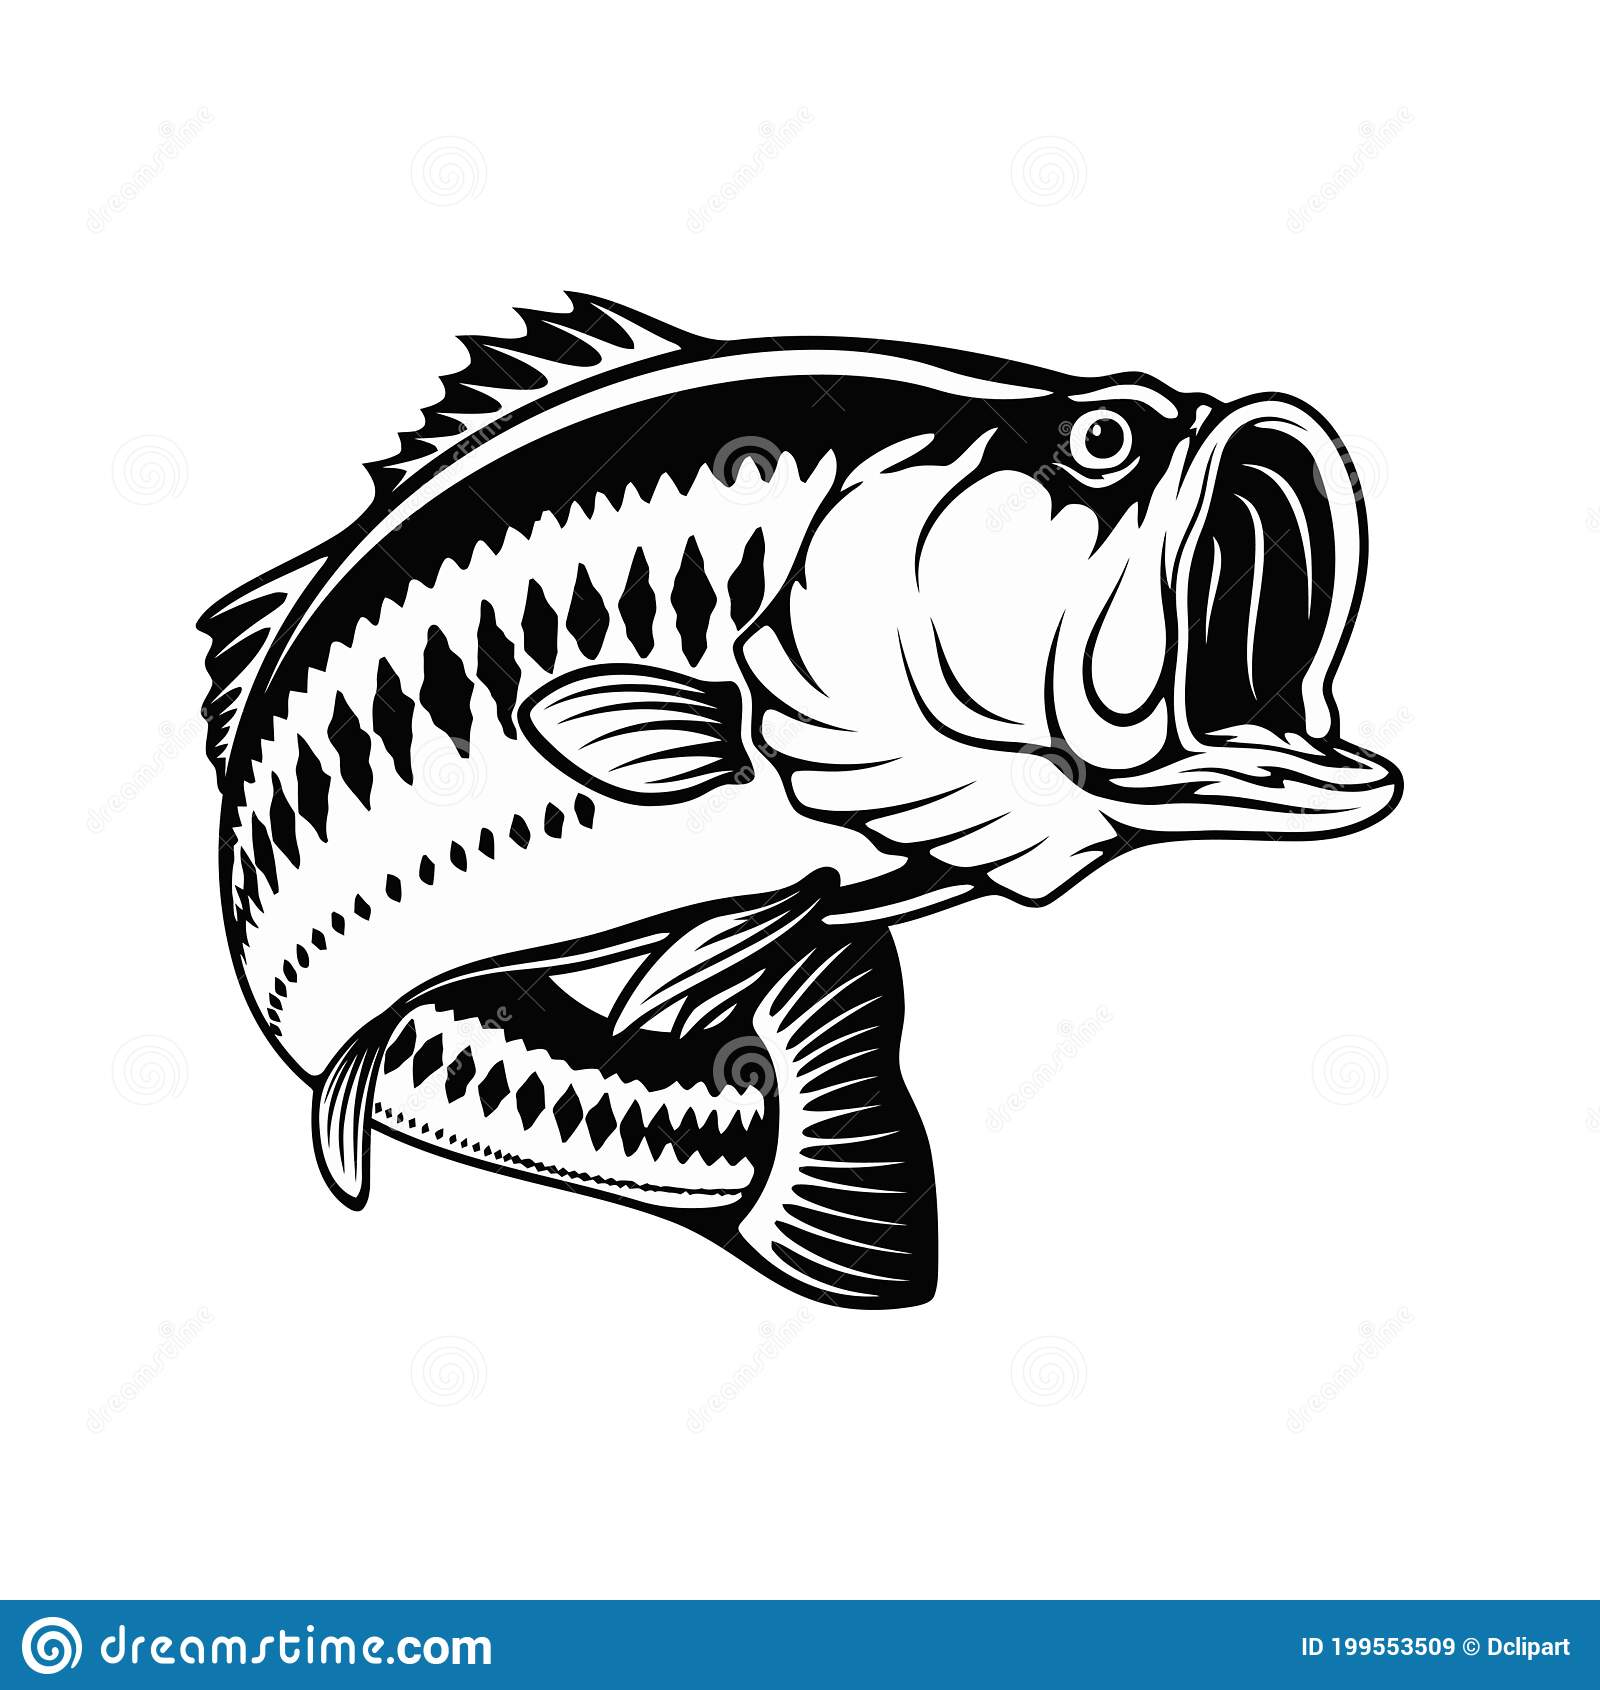 Largemouth bass relief print black on white